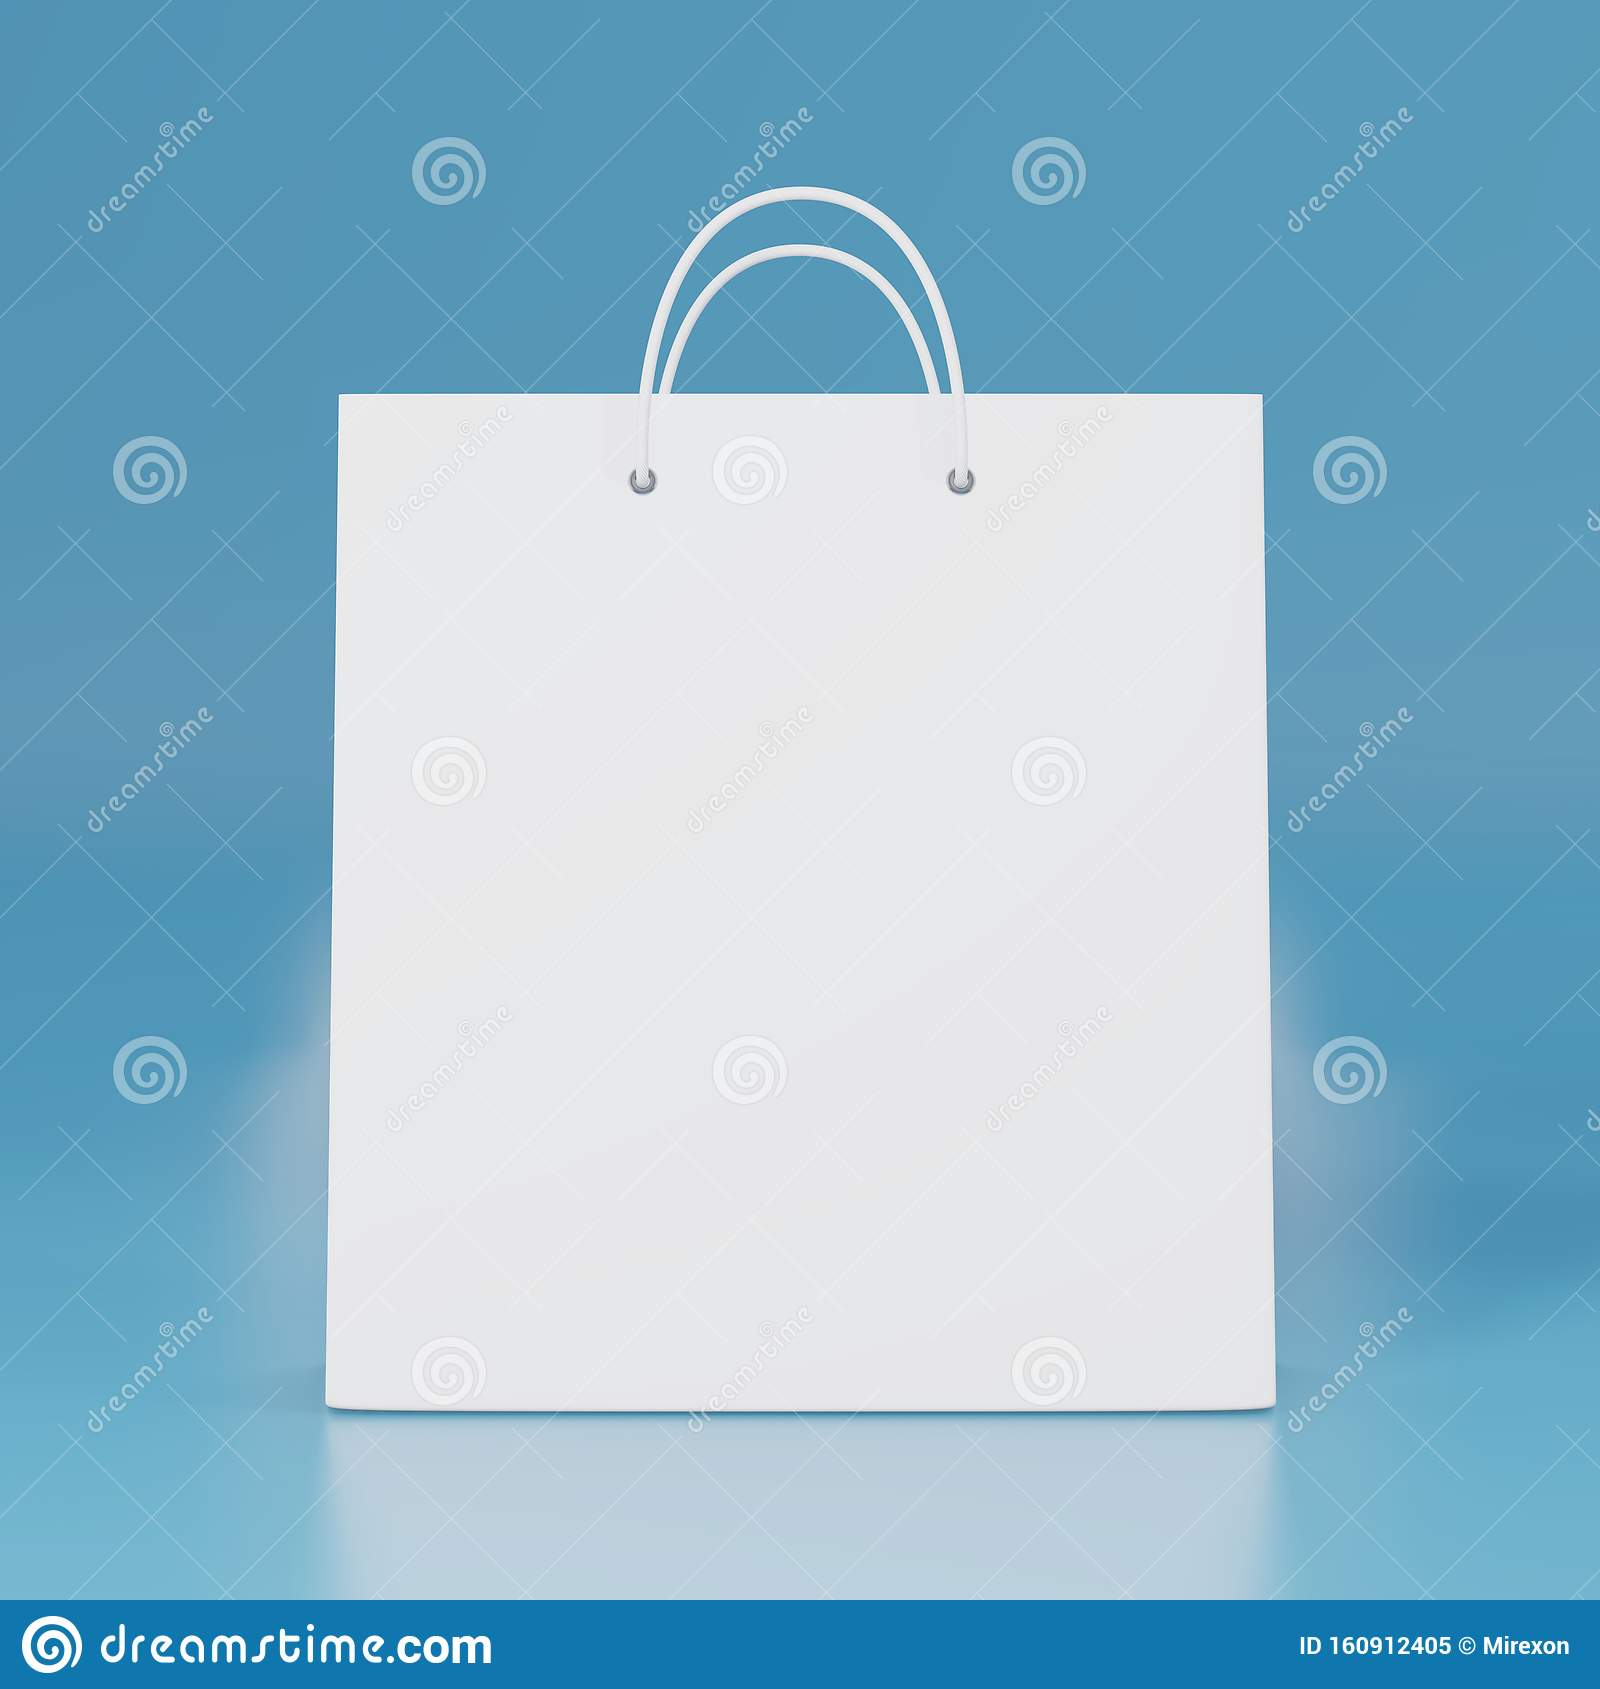 Blank White Paper Bag With Isolated 3d Rendering Empty Gift Carry Pack Template Shopping Packet Mock Up Stock Illustration Illustration Of Christmas Design 160912405